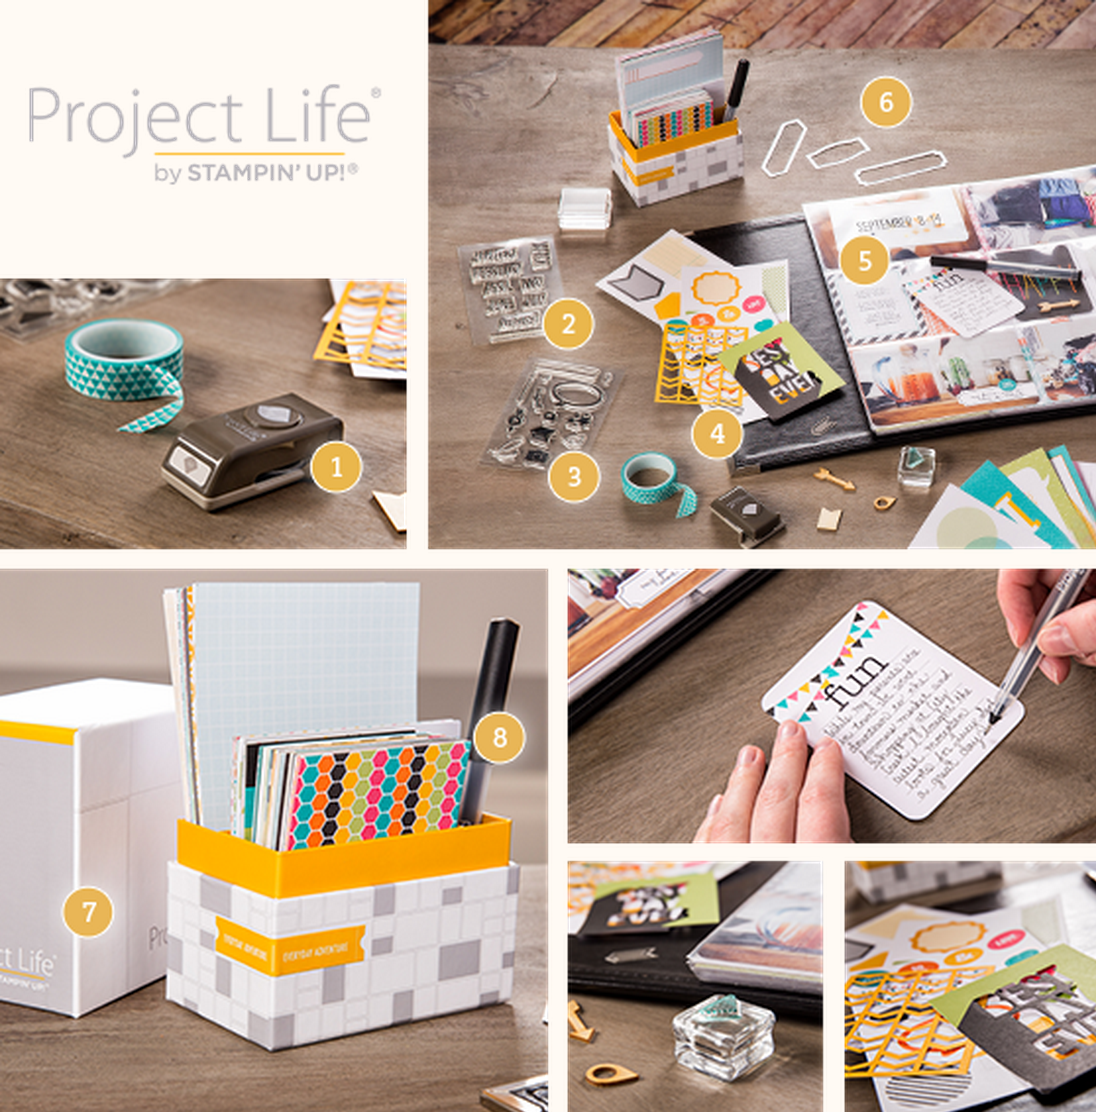 Le Project Life Stampin'Up! est là!